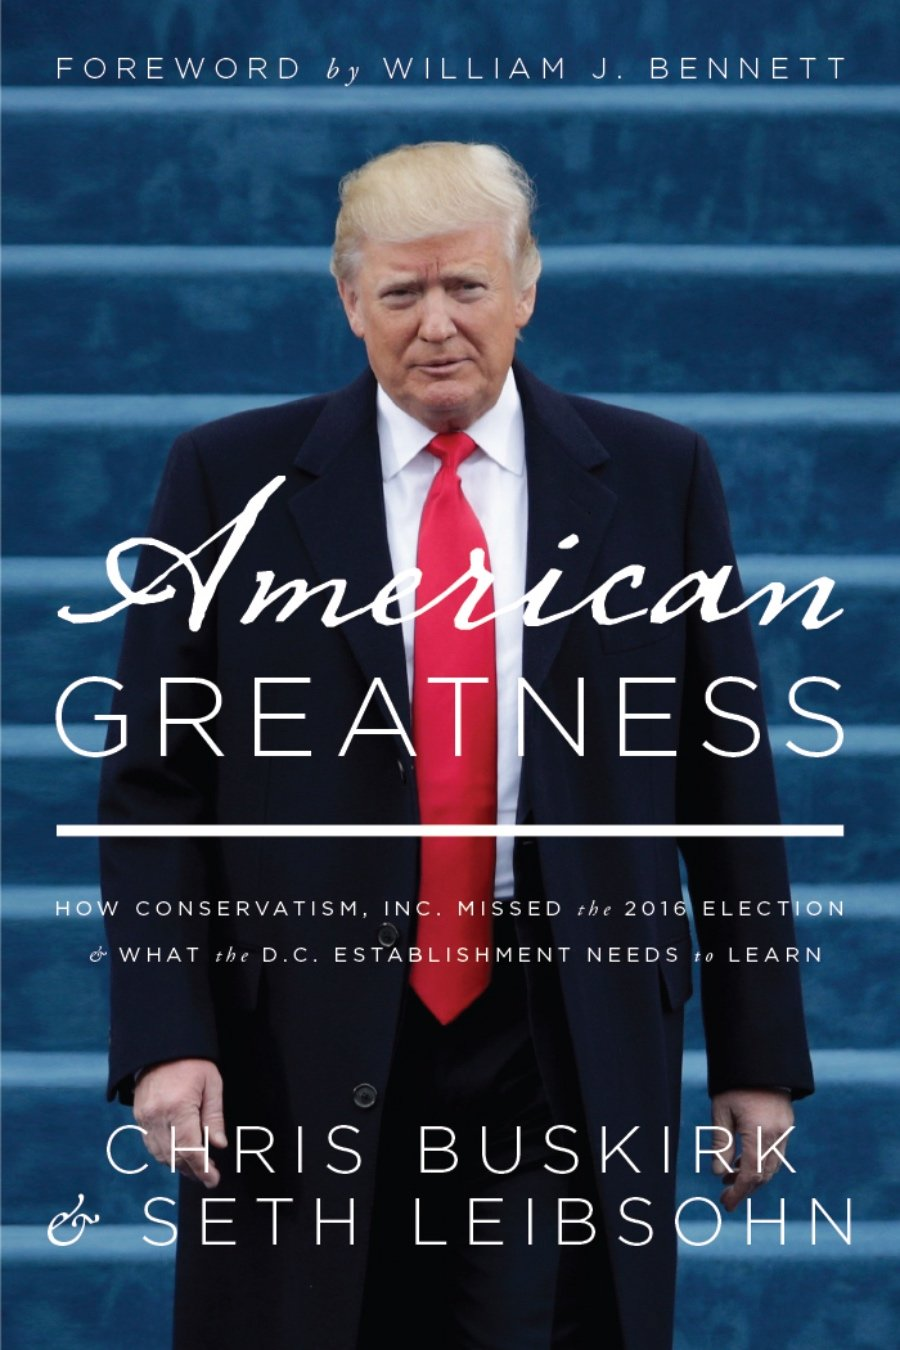 American Greatness: How Conservatism Inc. Missed the 2016 Election and What  the D.C. Establishment Needs to Learn: Leibsohn, Seth, Buskirk, Chris,  Bennett, William J.: 9781944229849: Amazon.com: Books